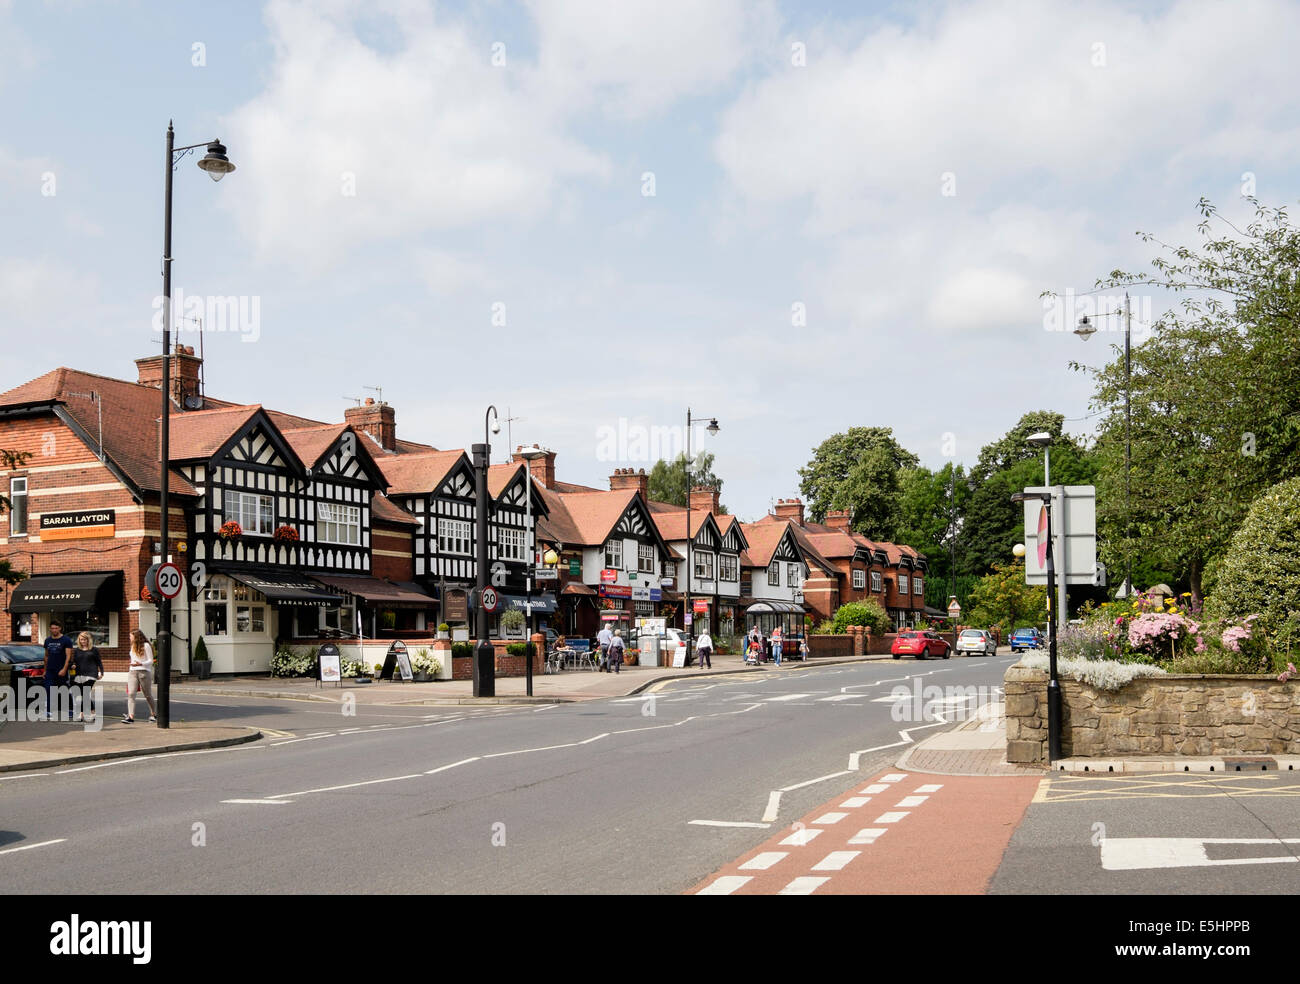 Street scene with small  shops in centre of Ribble Valley village. King Street, Whalley, Lancashire, England, UK, - Stock Image